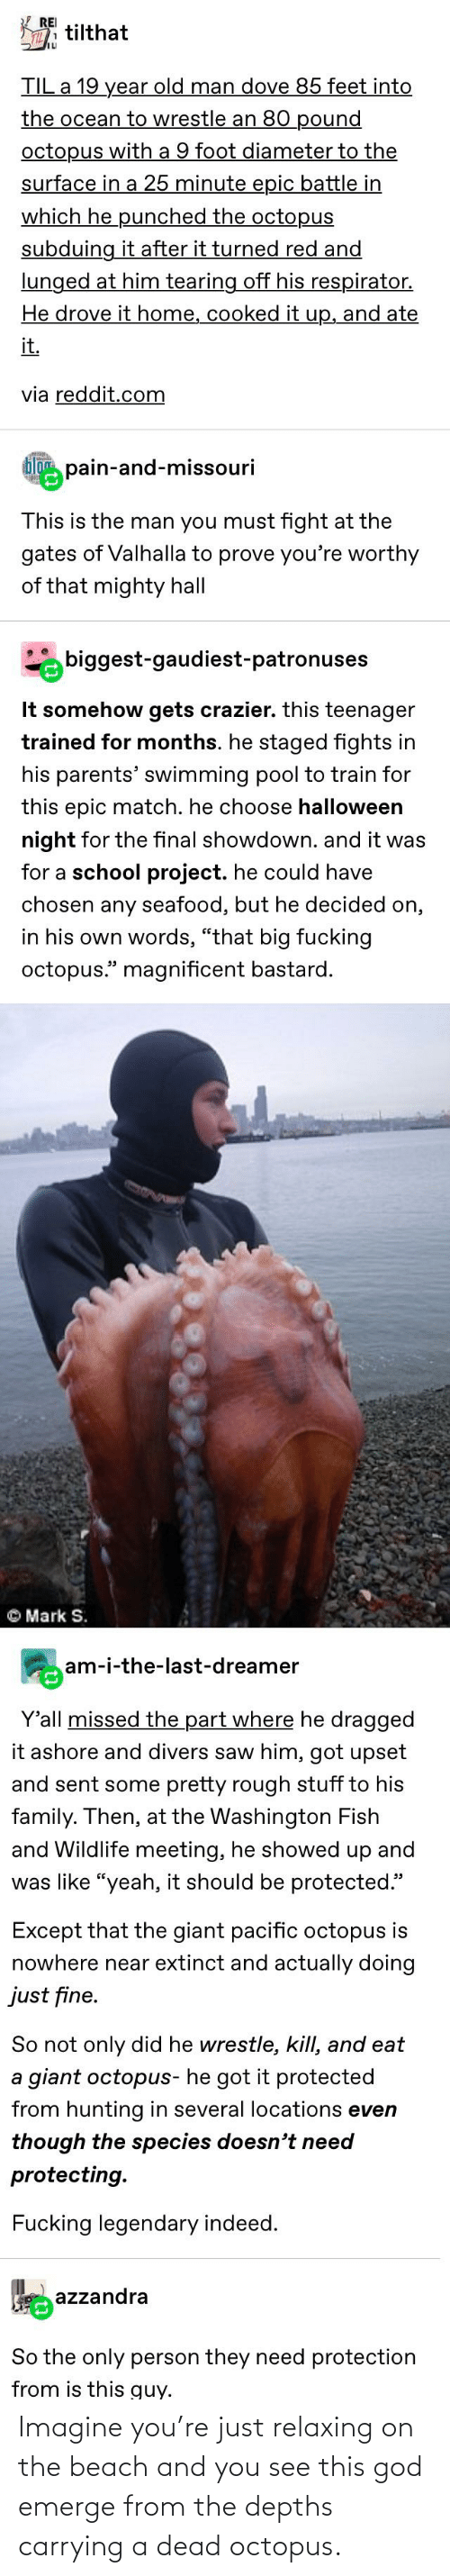 Just Relaxing: Imagine you're just relaxing on the beach and you see this god emerge from the depths carrying a dead octopus.